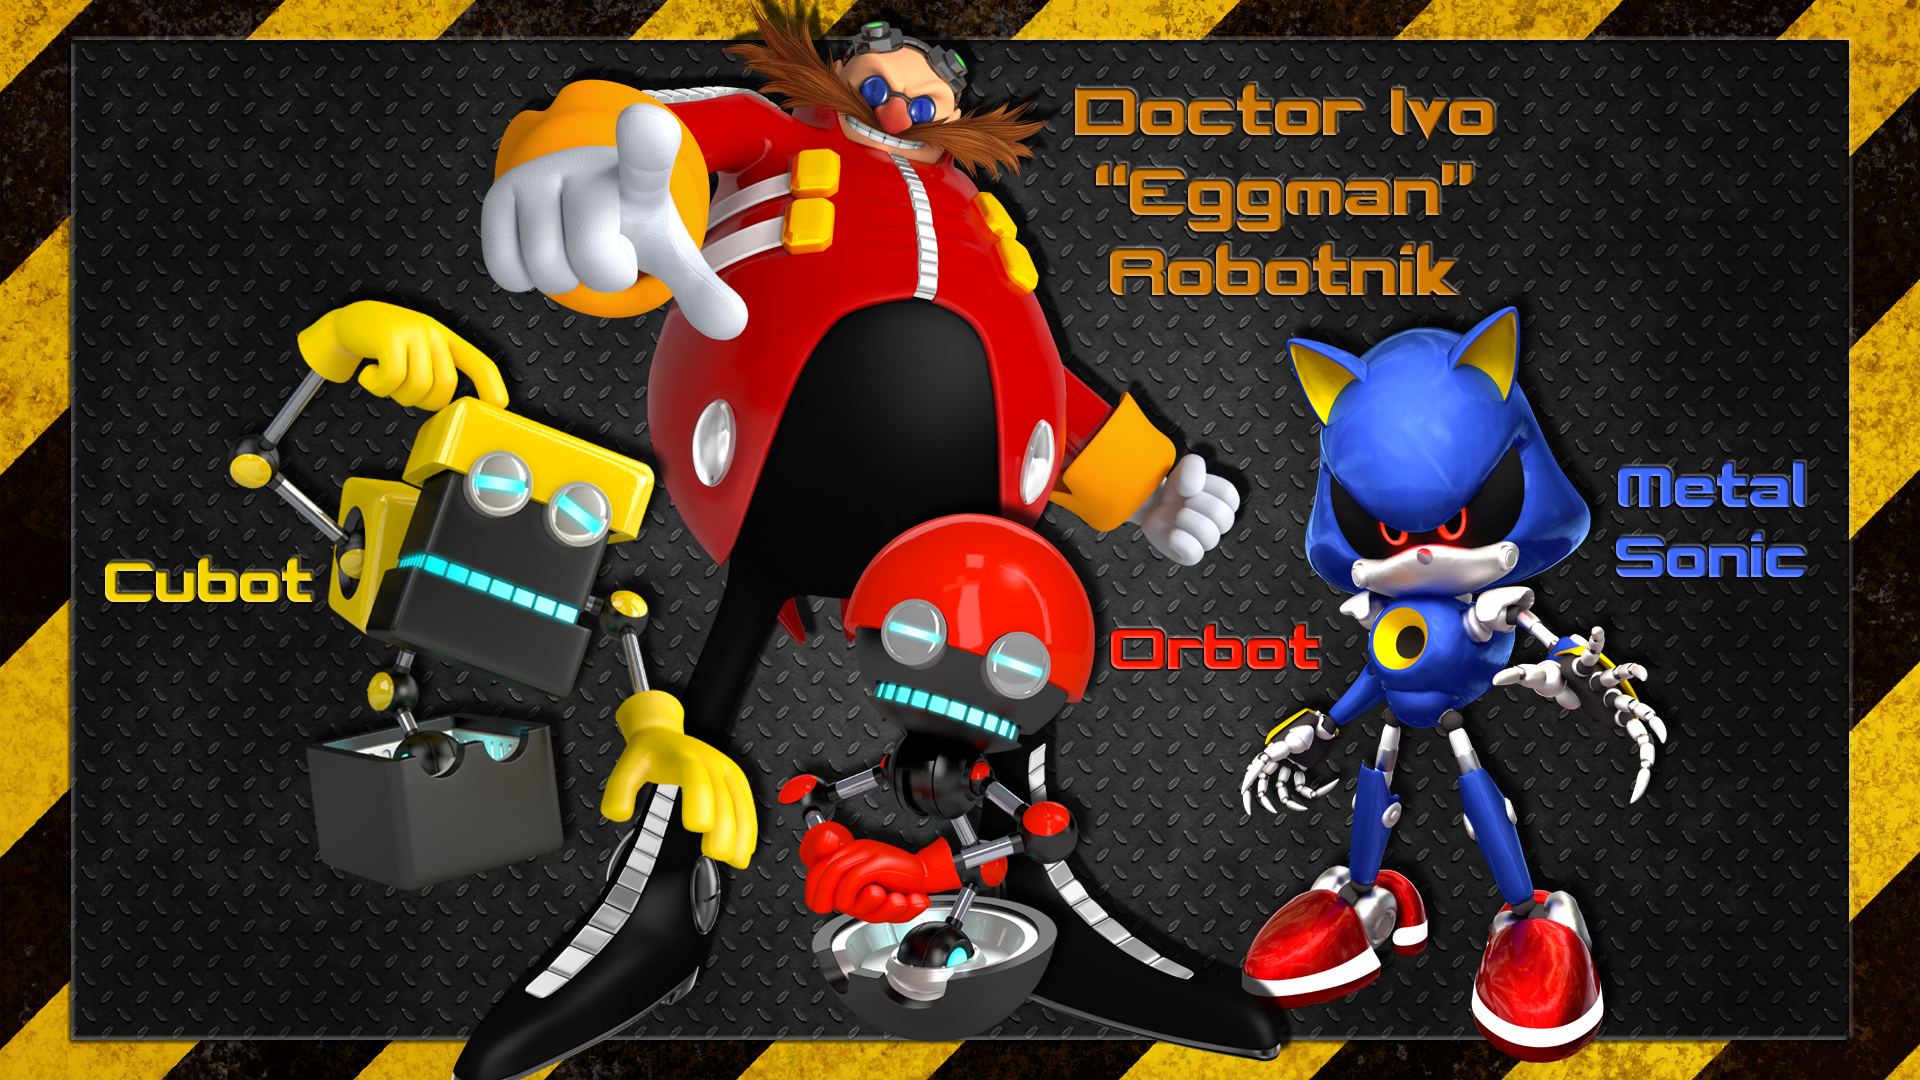 Team Eggman Sonic The Hedgehog Know Your Meme